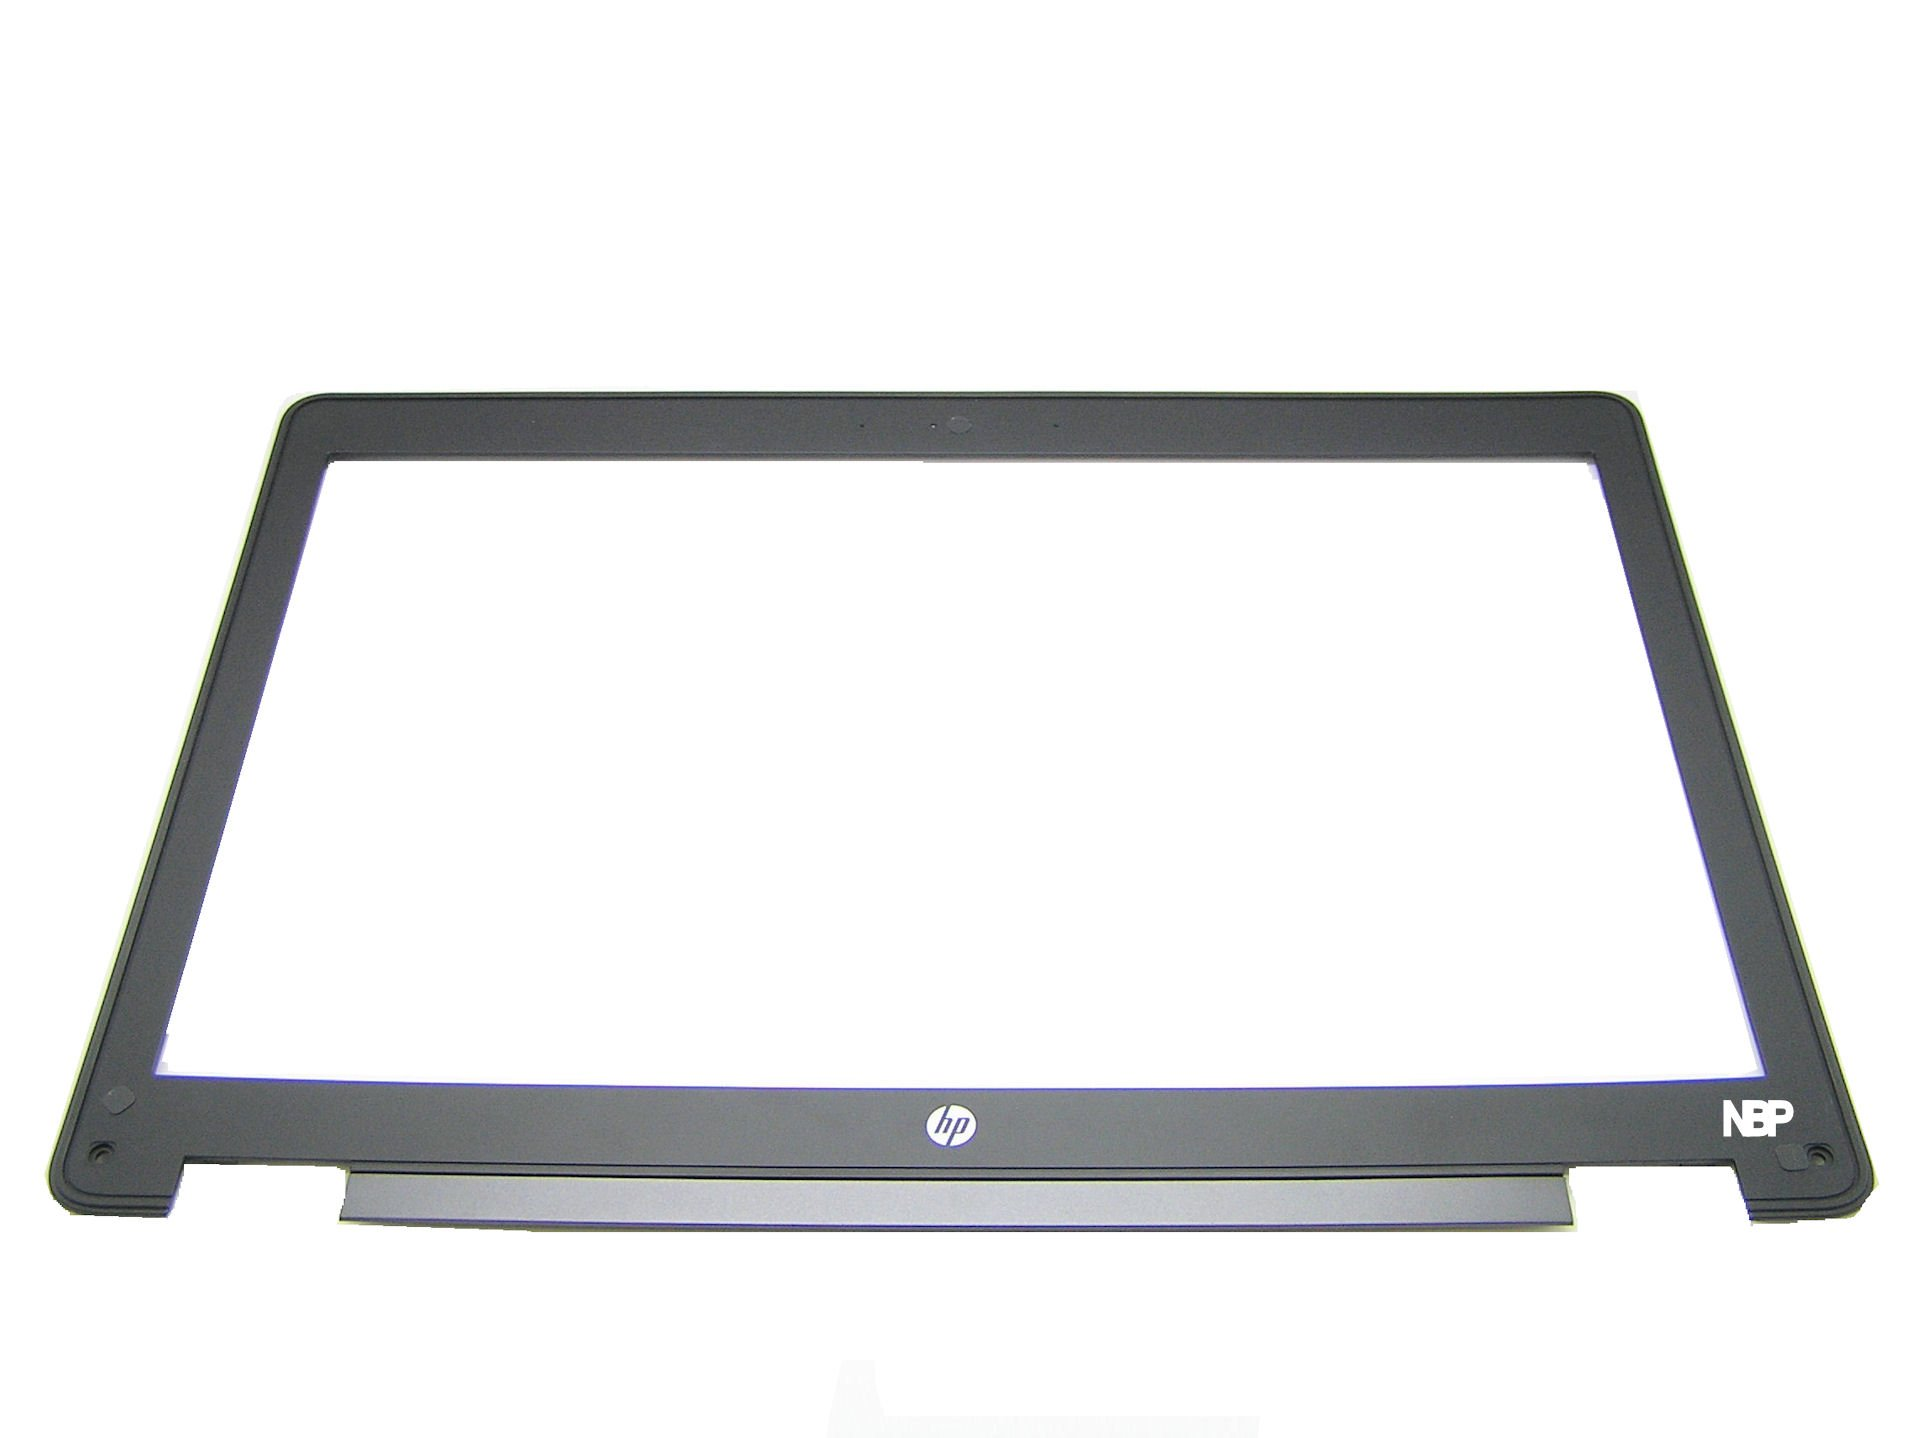 HP 734302-001 Display bezel - For use on models without a webcam